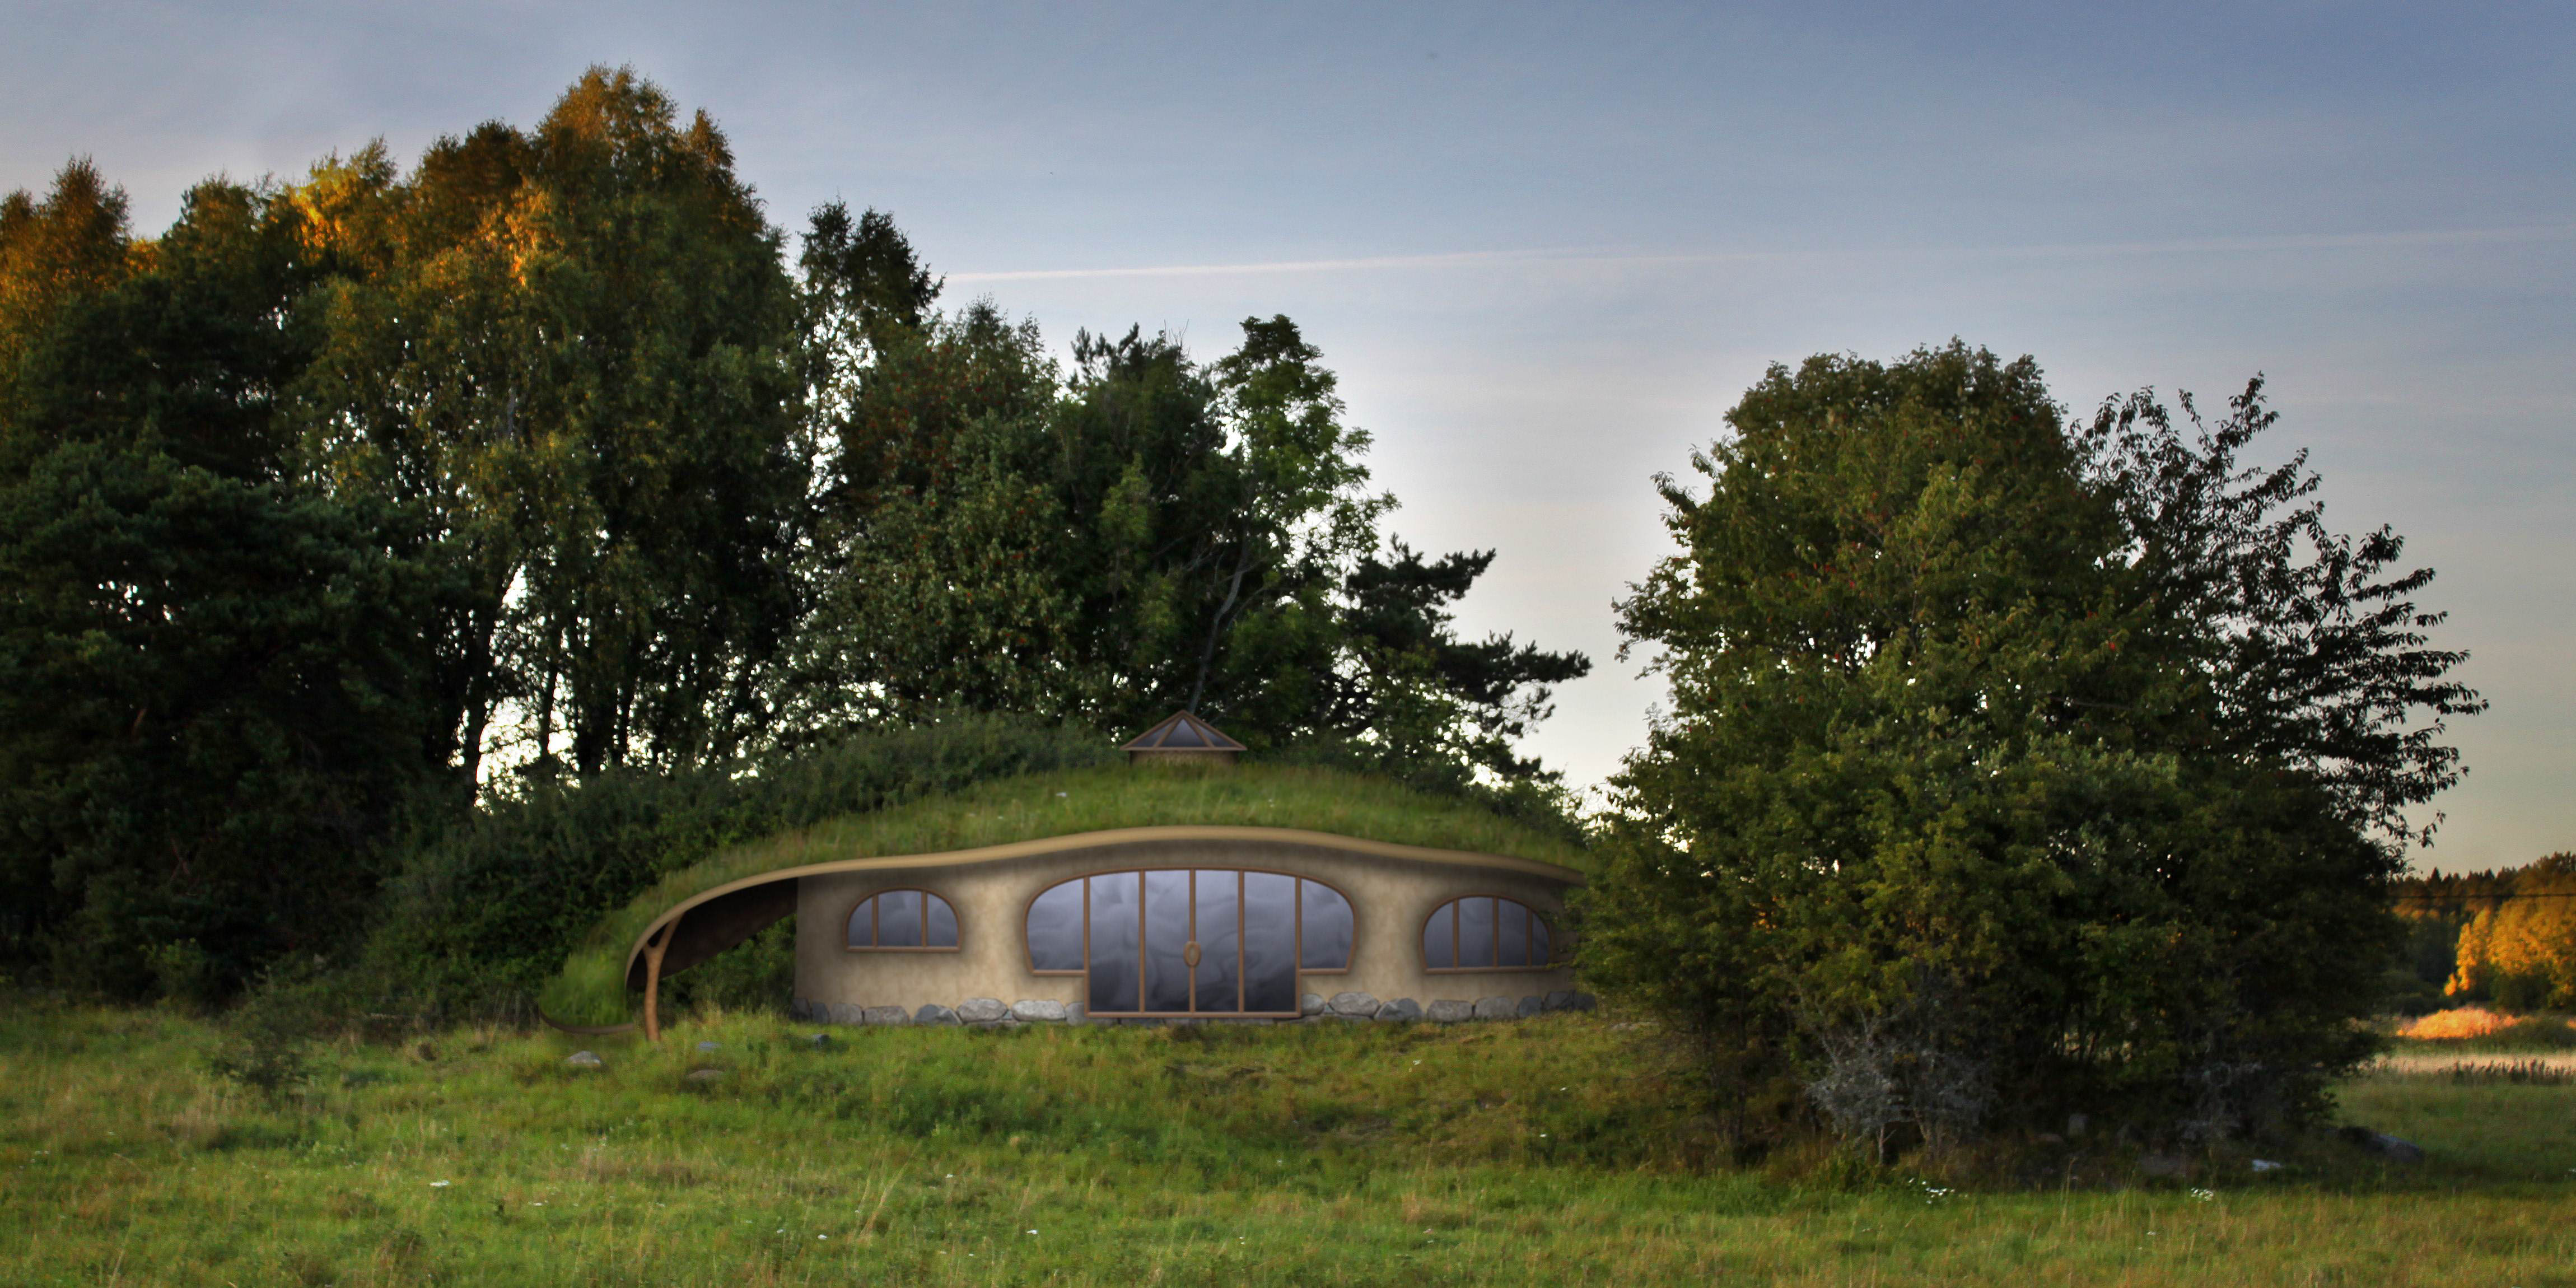 Real-life hobbit village planned for Swedish isle | The Japan Times